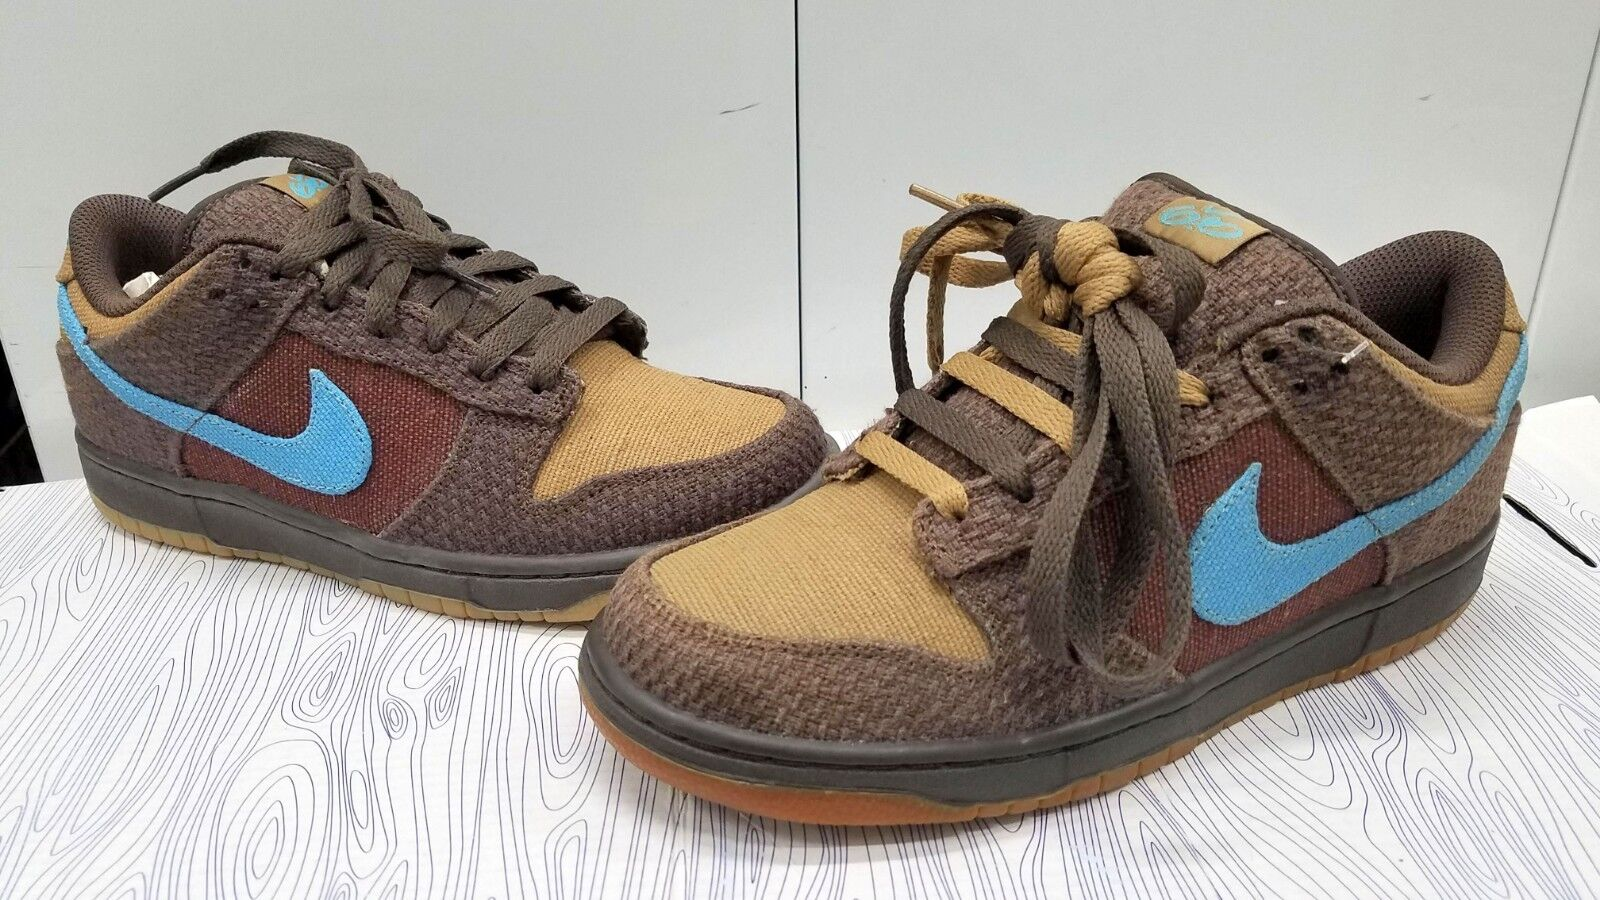 NIKE SB DUNK LOW 7.5 6.0 TWEED MEN'S SIZE: 7.5 LOW BROWN/LATTE/BLUE 314142-205 2010 9d2e6b